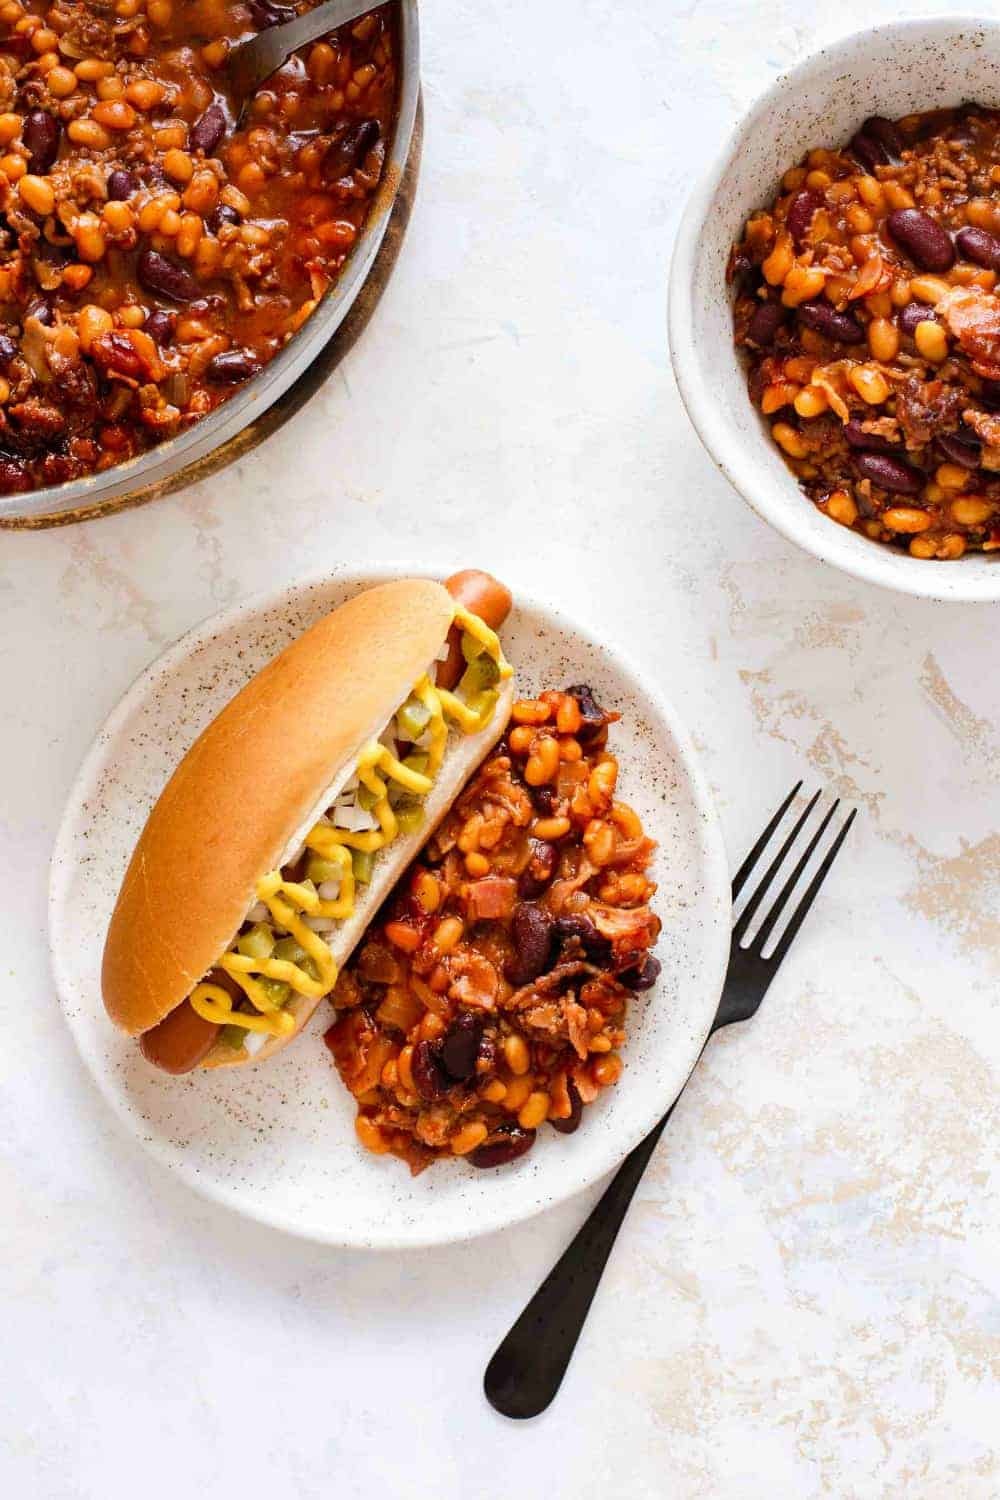 Hot dog and old fashioned baked beans on a white plate next to bowls of baked beans